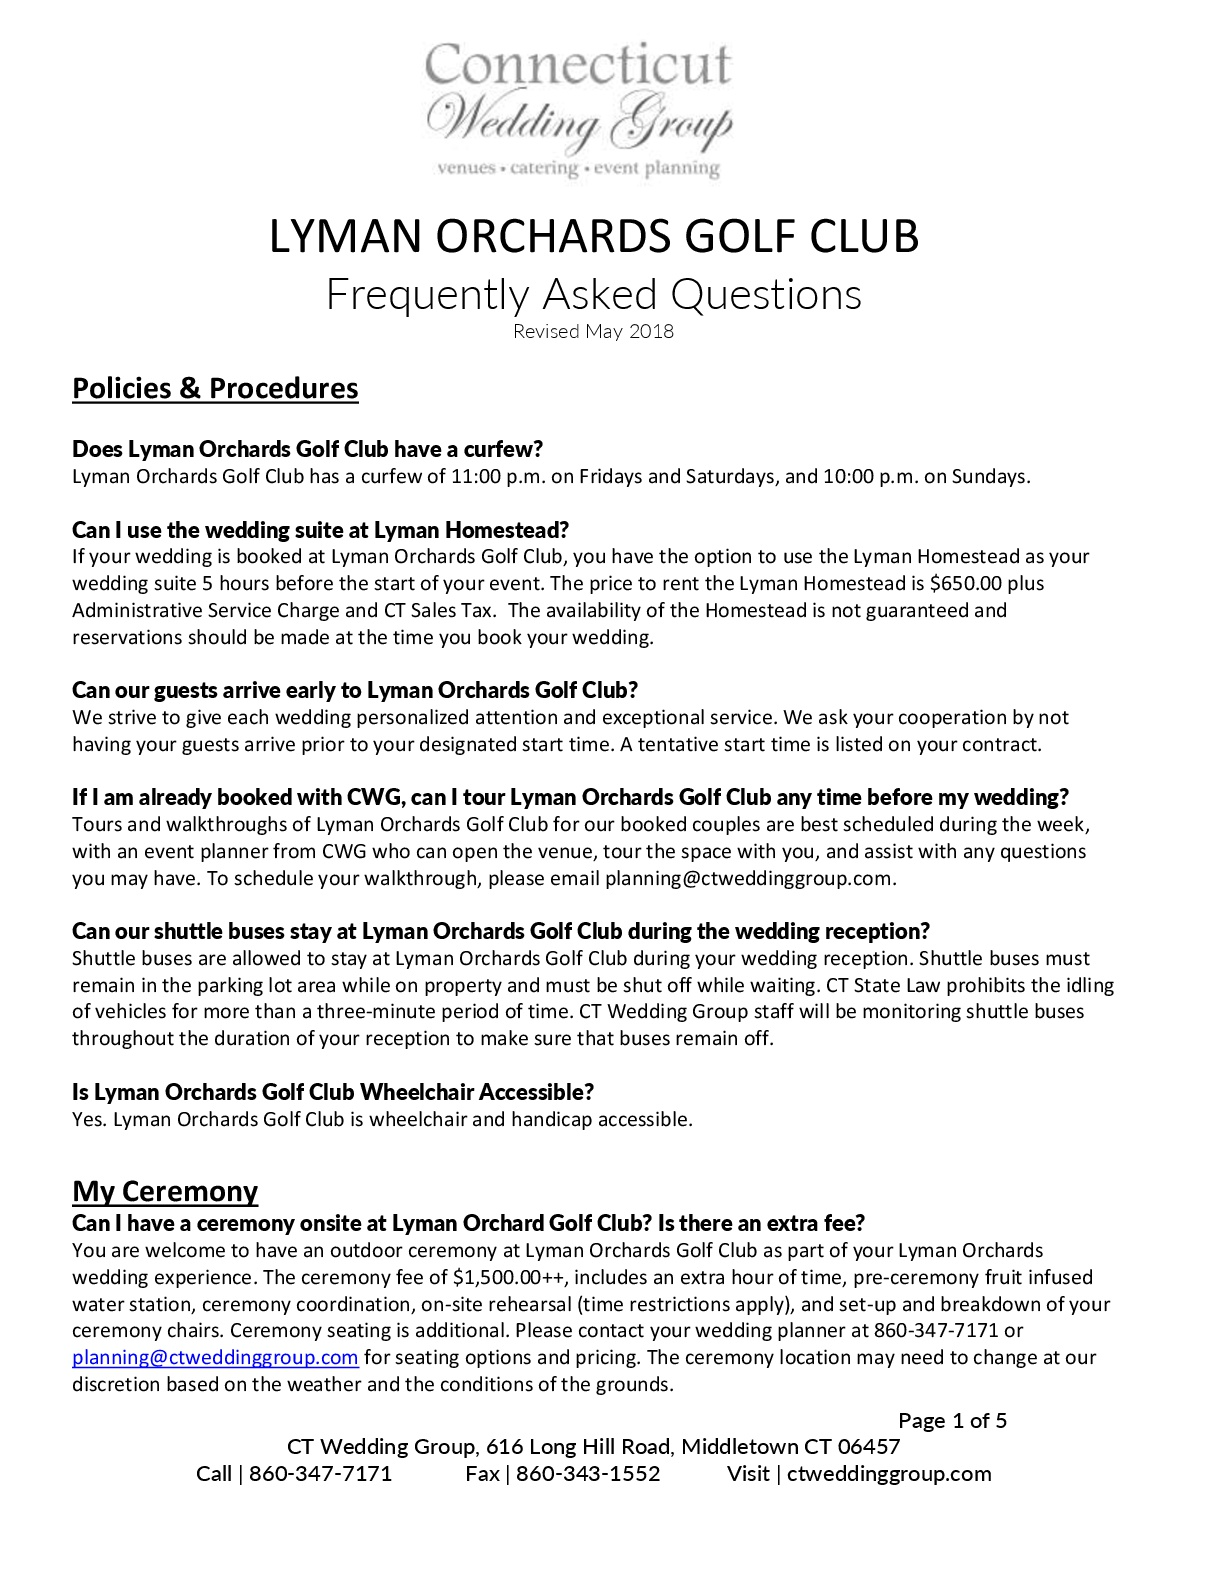 Frequently-Asked-Questions-Lymans-May-2018-001